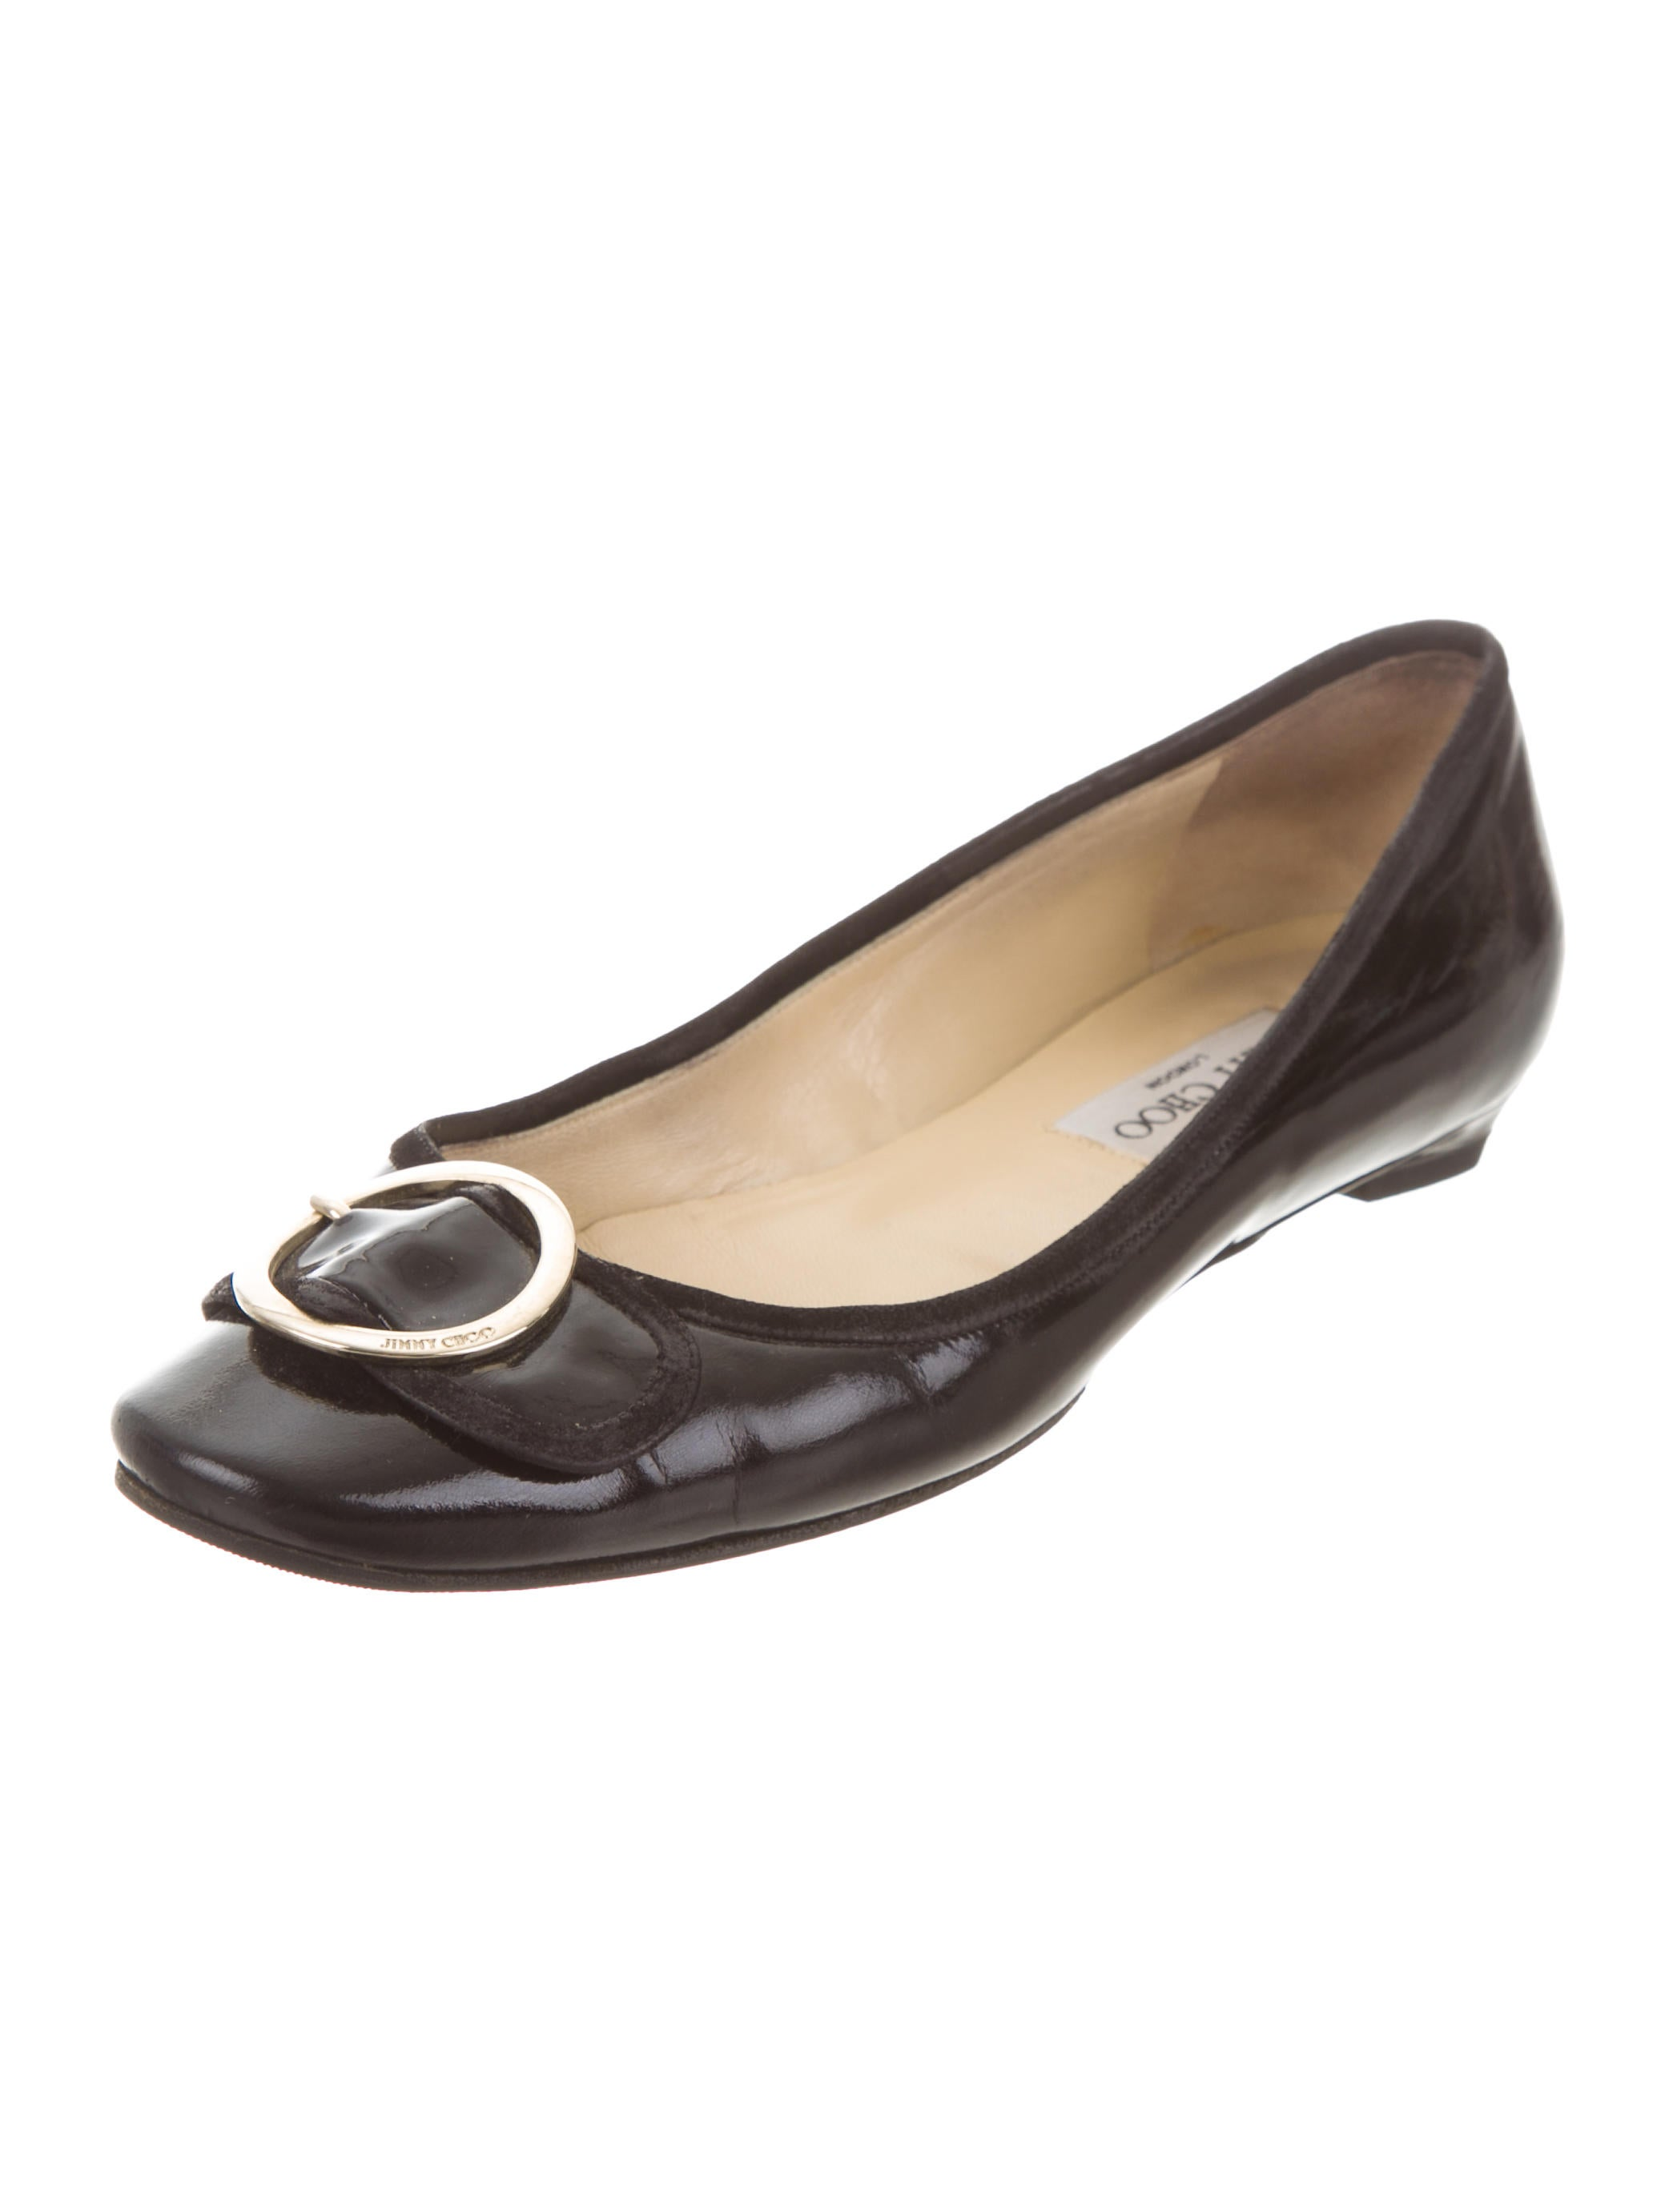 Jimmy Choo Round-Toe Buckle Flats under $60 cheap online browse recommend sale online yRHcAsXD